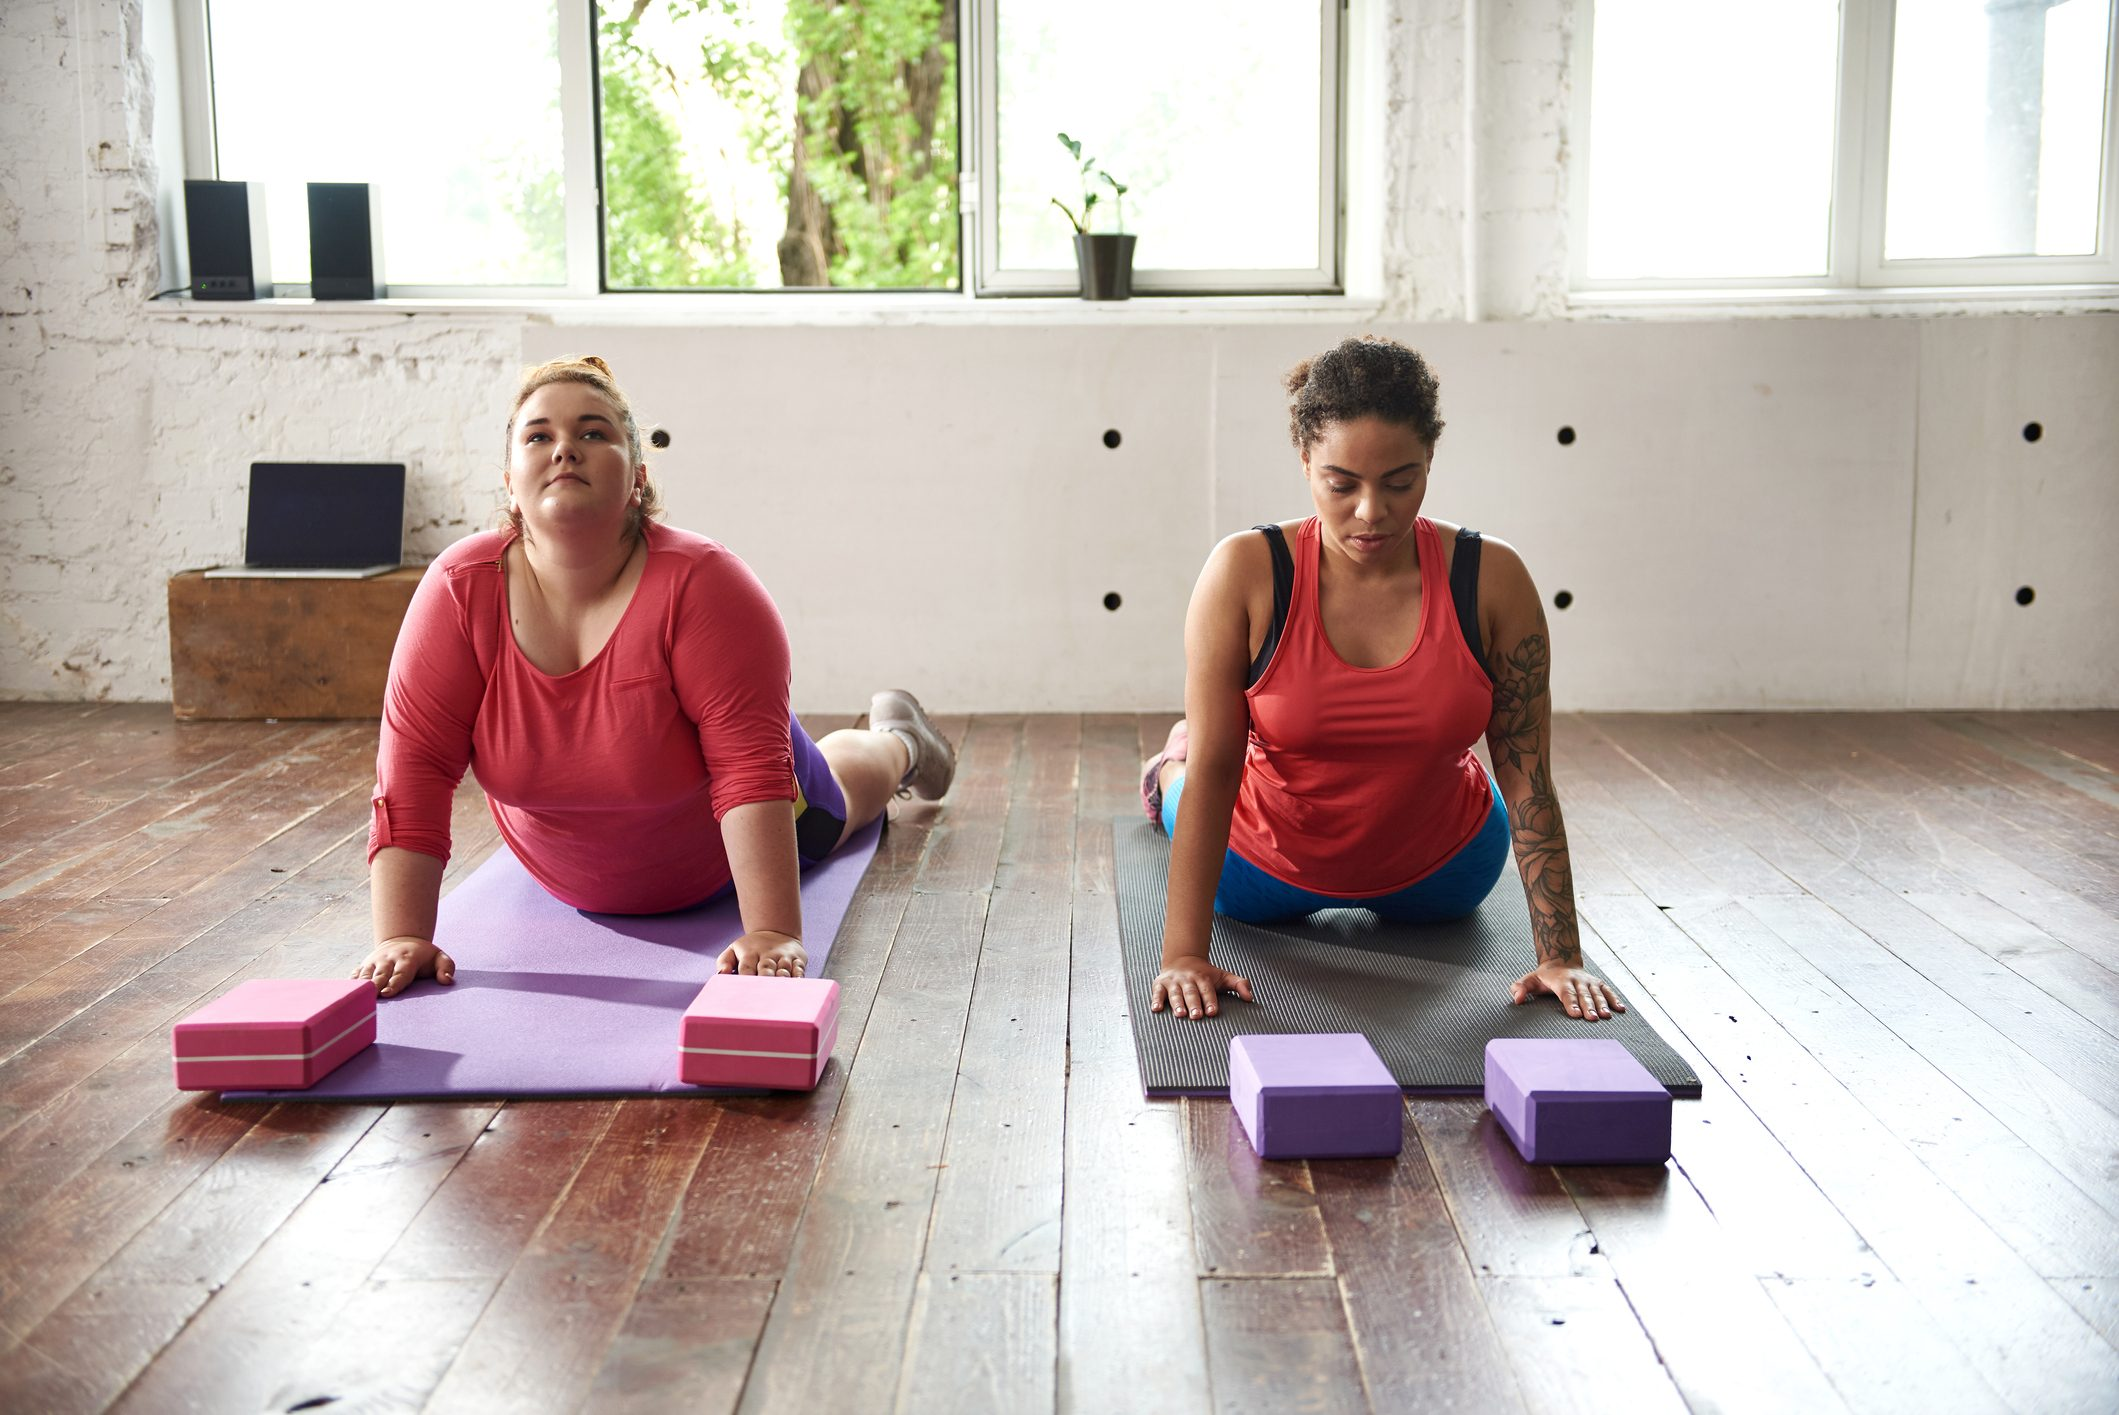 Calm fat women are doing yoga exercises